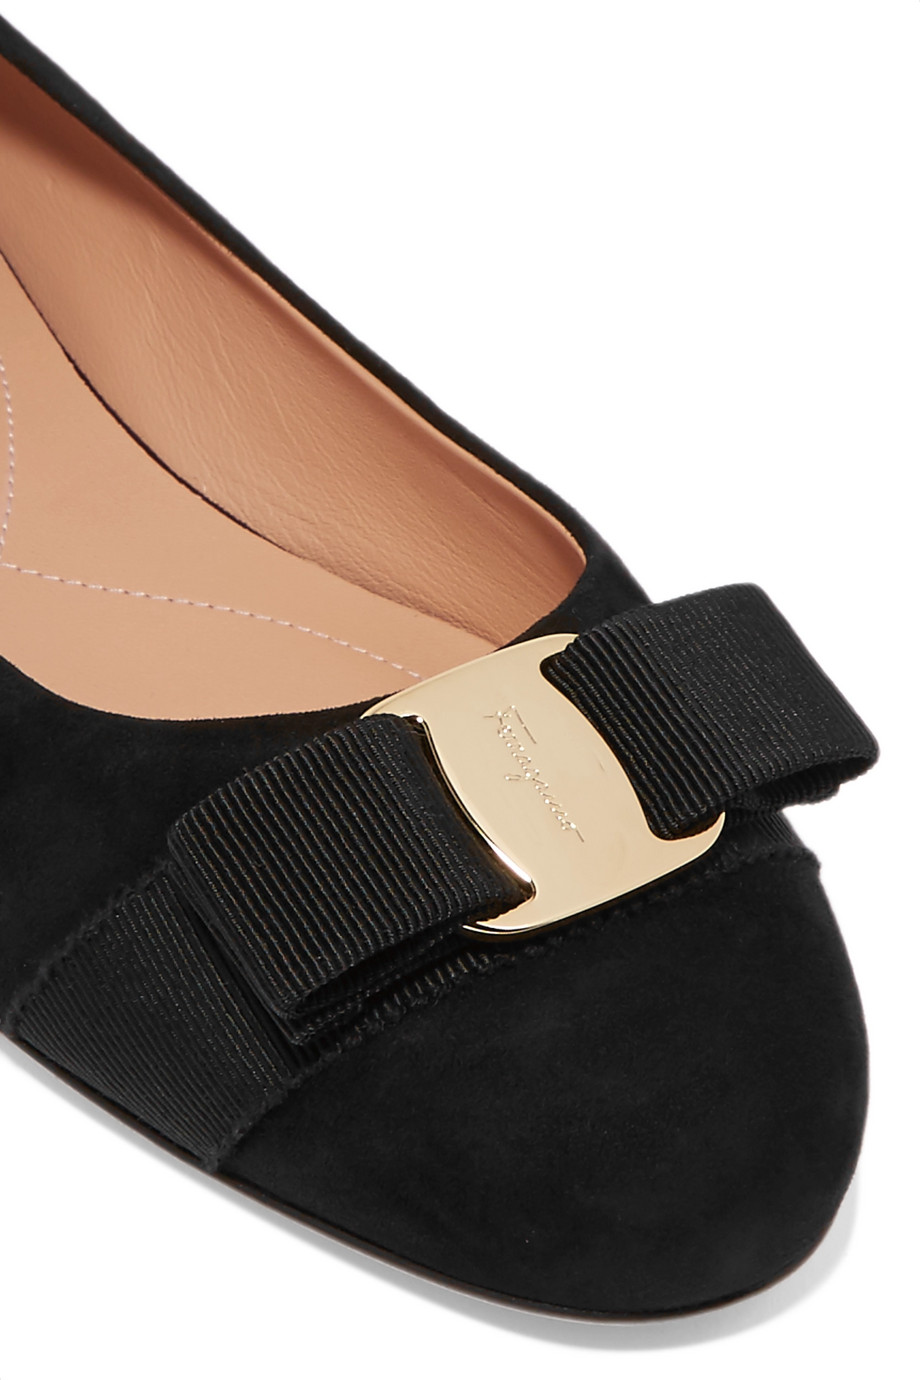 Suede ballerinas Salvatore Ferragamo buy Suede ballerinas Salvatore Ferragamo internet shop